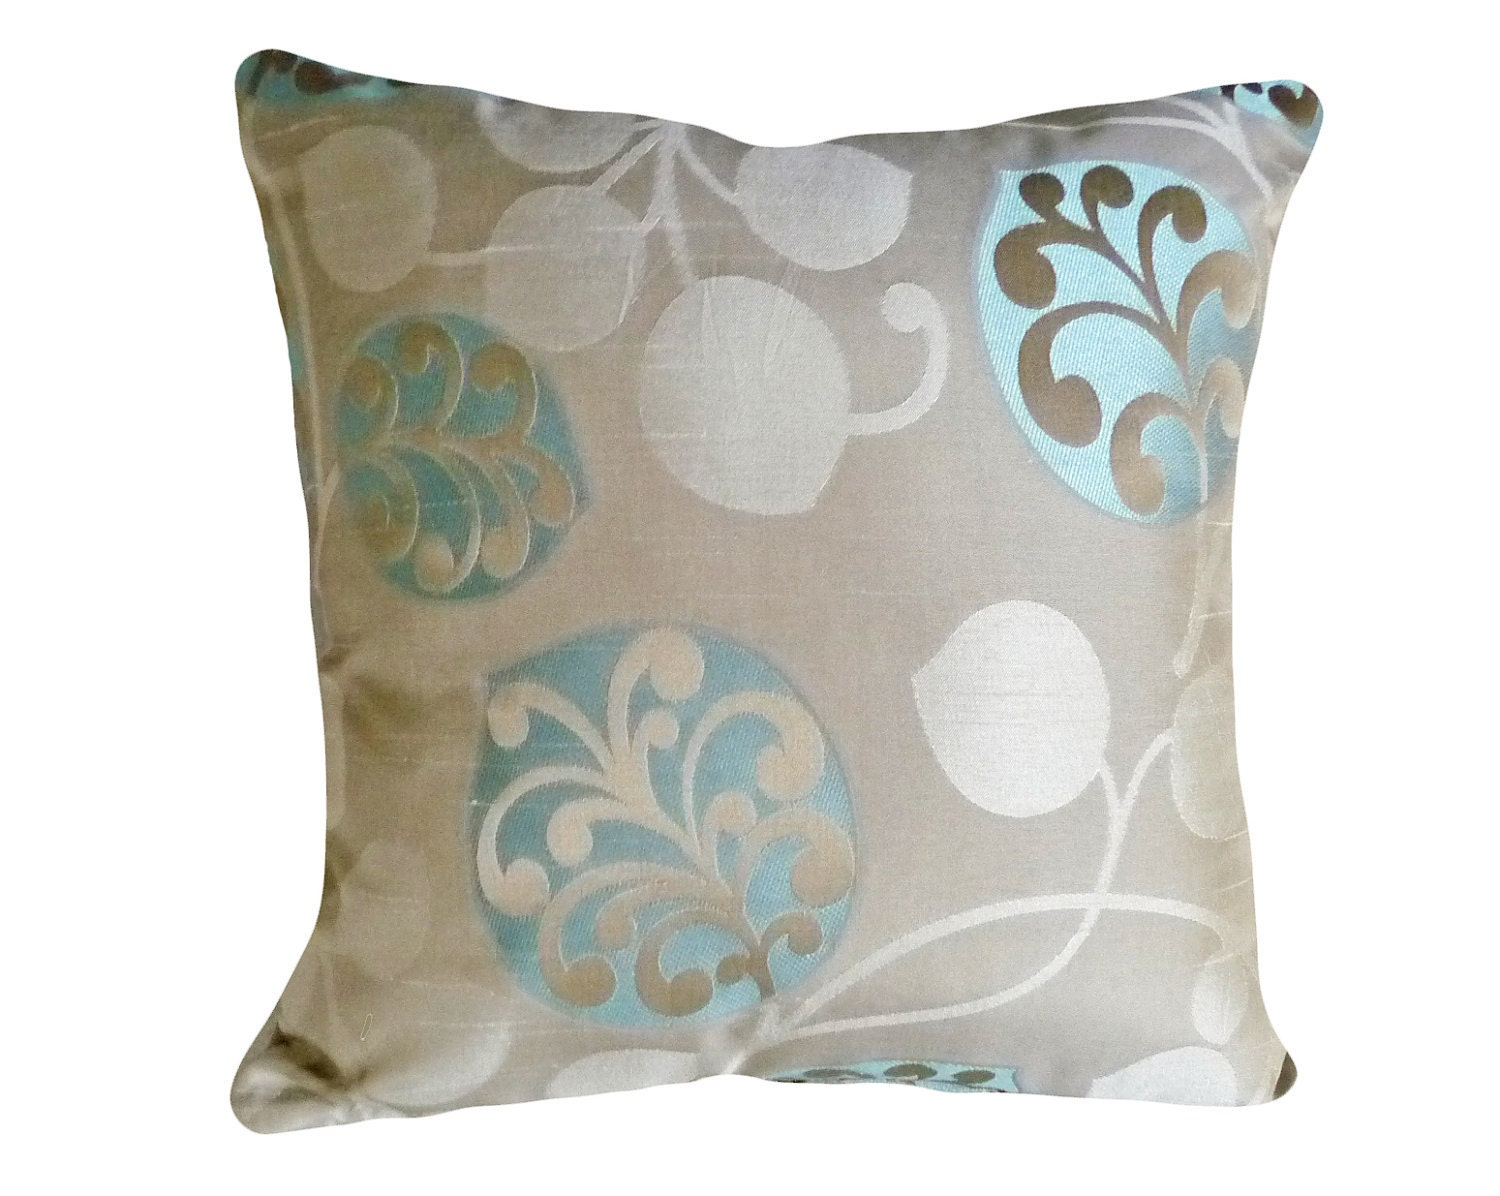 Throw Pillows Taupe : Chic Modern Pillows Taupe Tan Turquoise Blue 20 inch